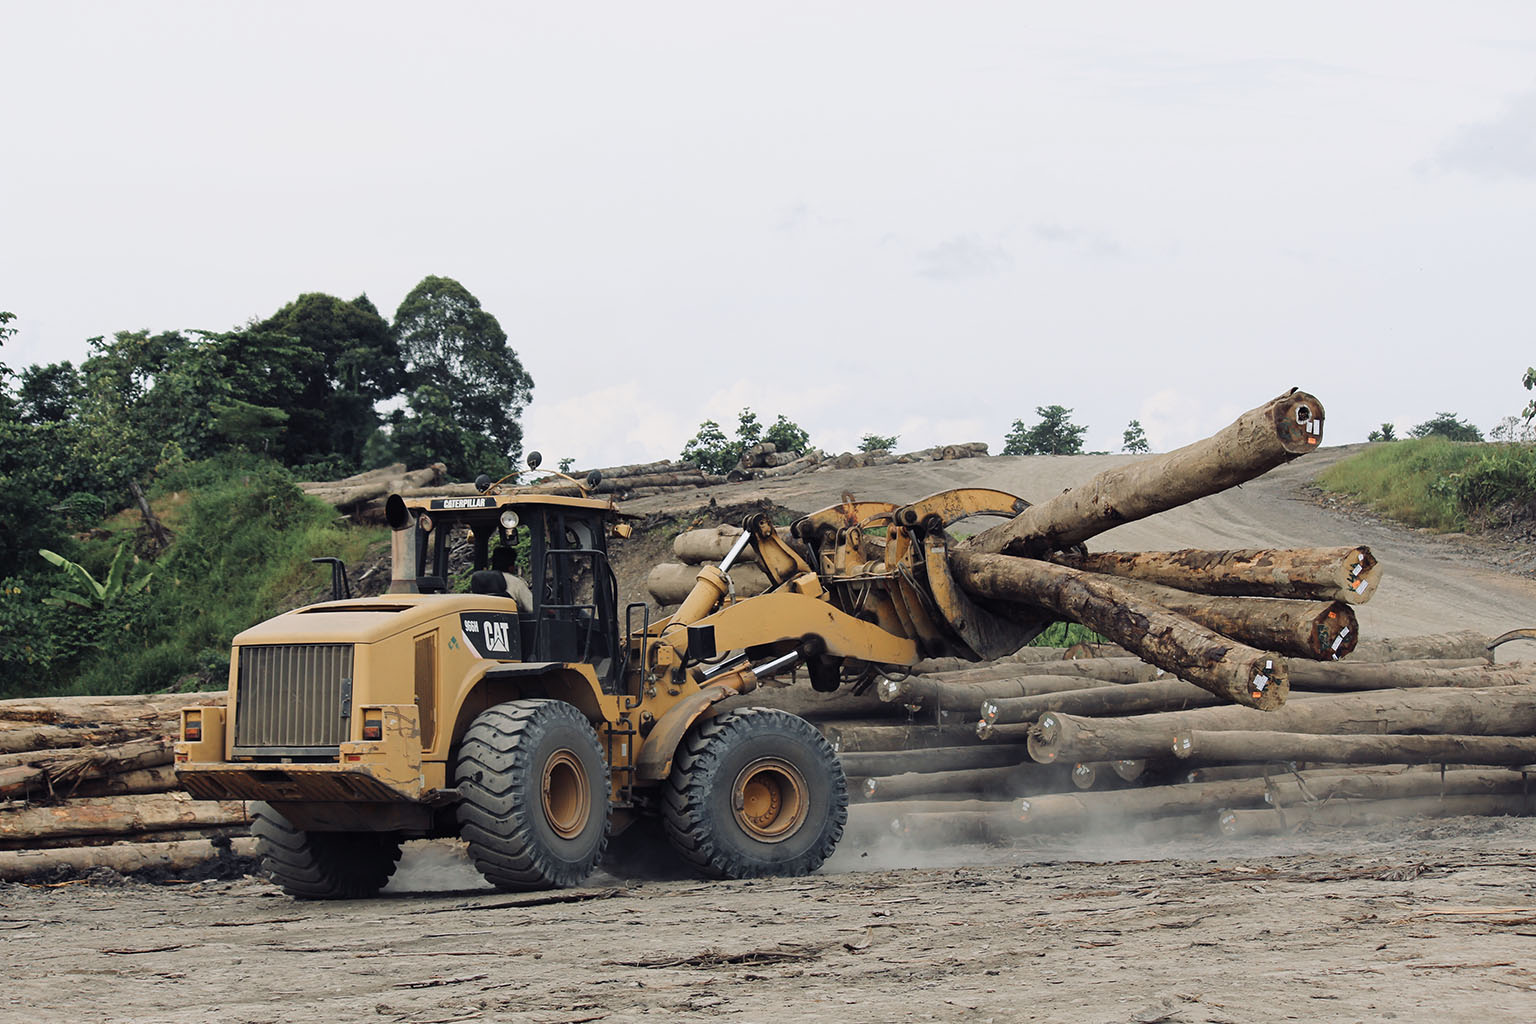 Logging by Samling in the Baram region in July 2018. Photo credit: Fiona McAlpine of The Borneo Project